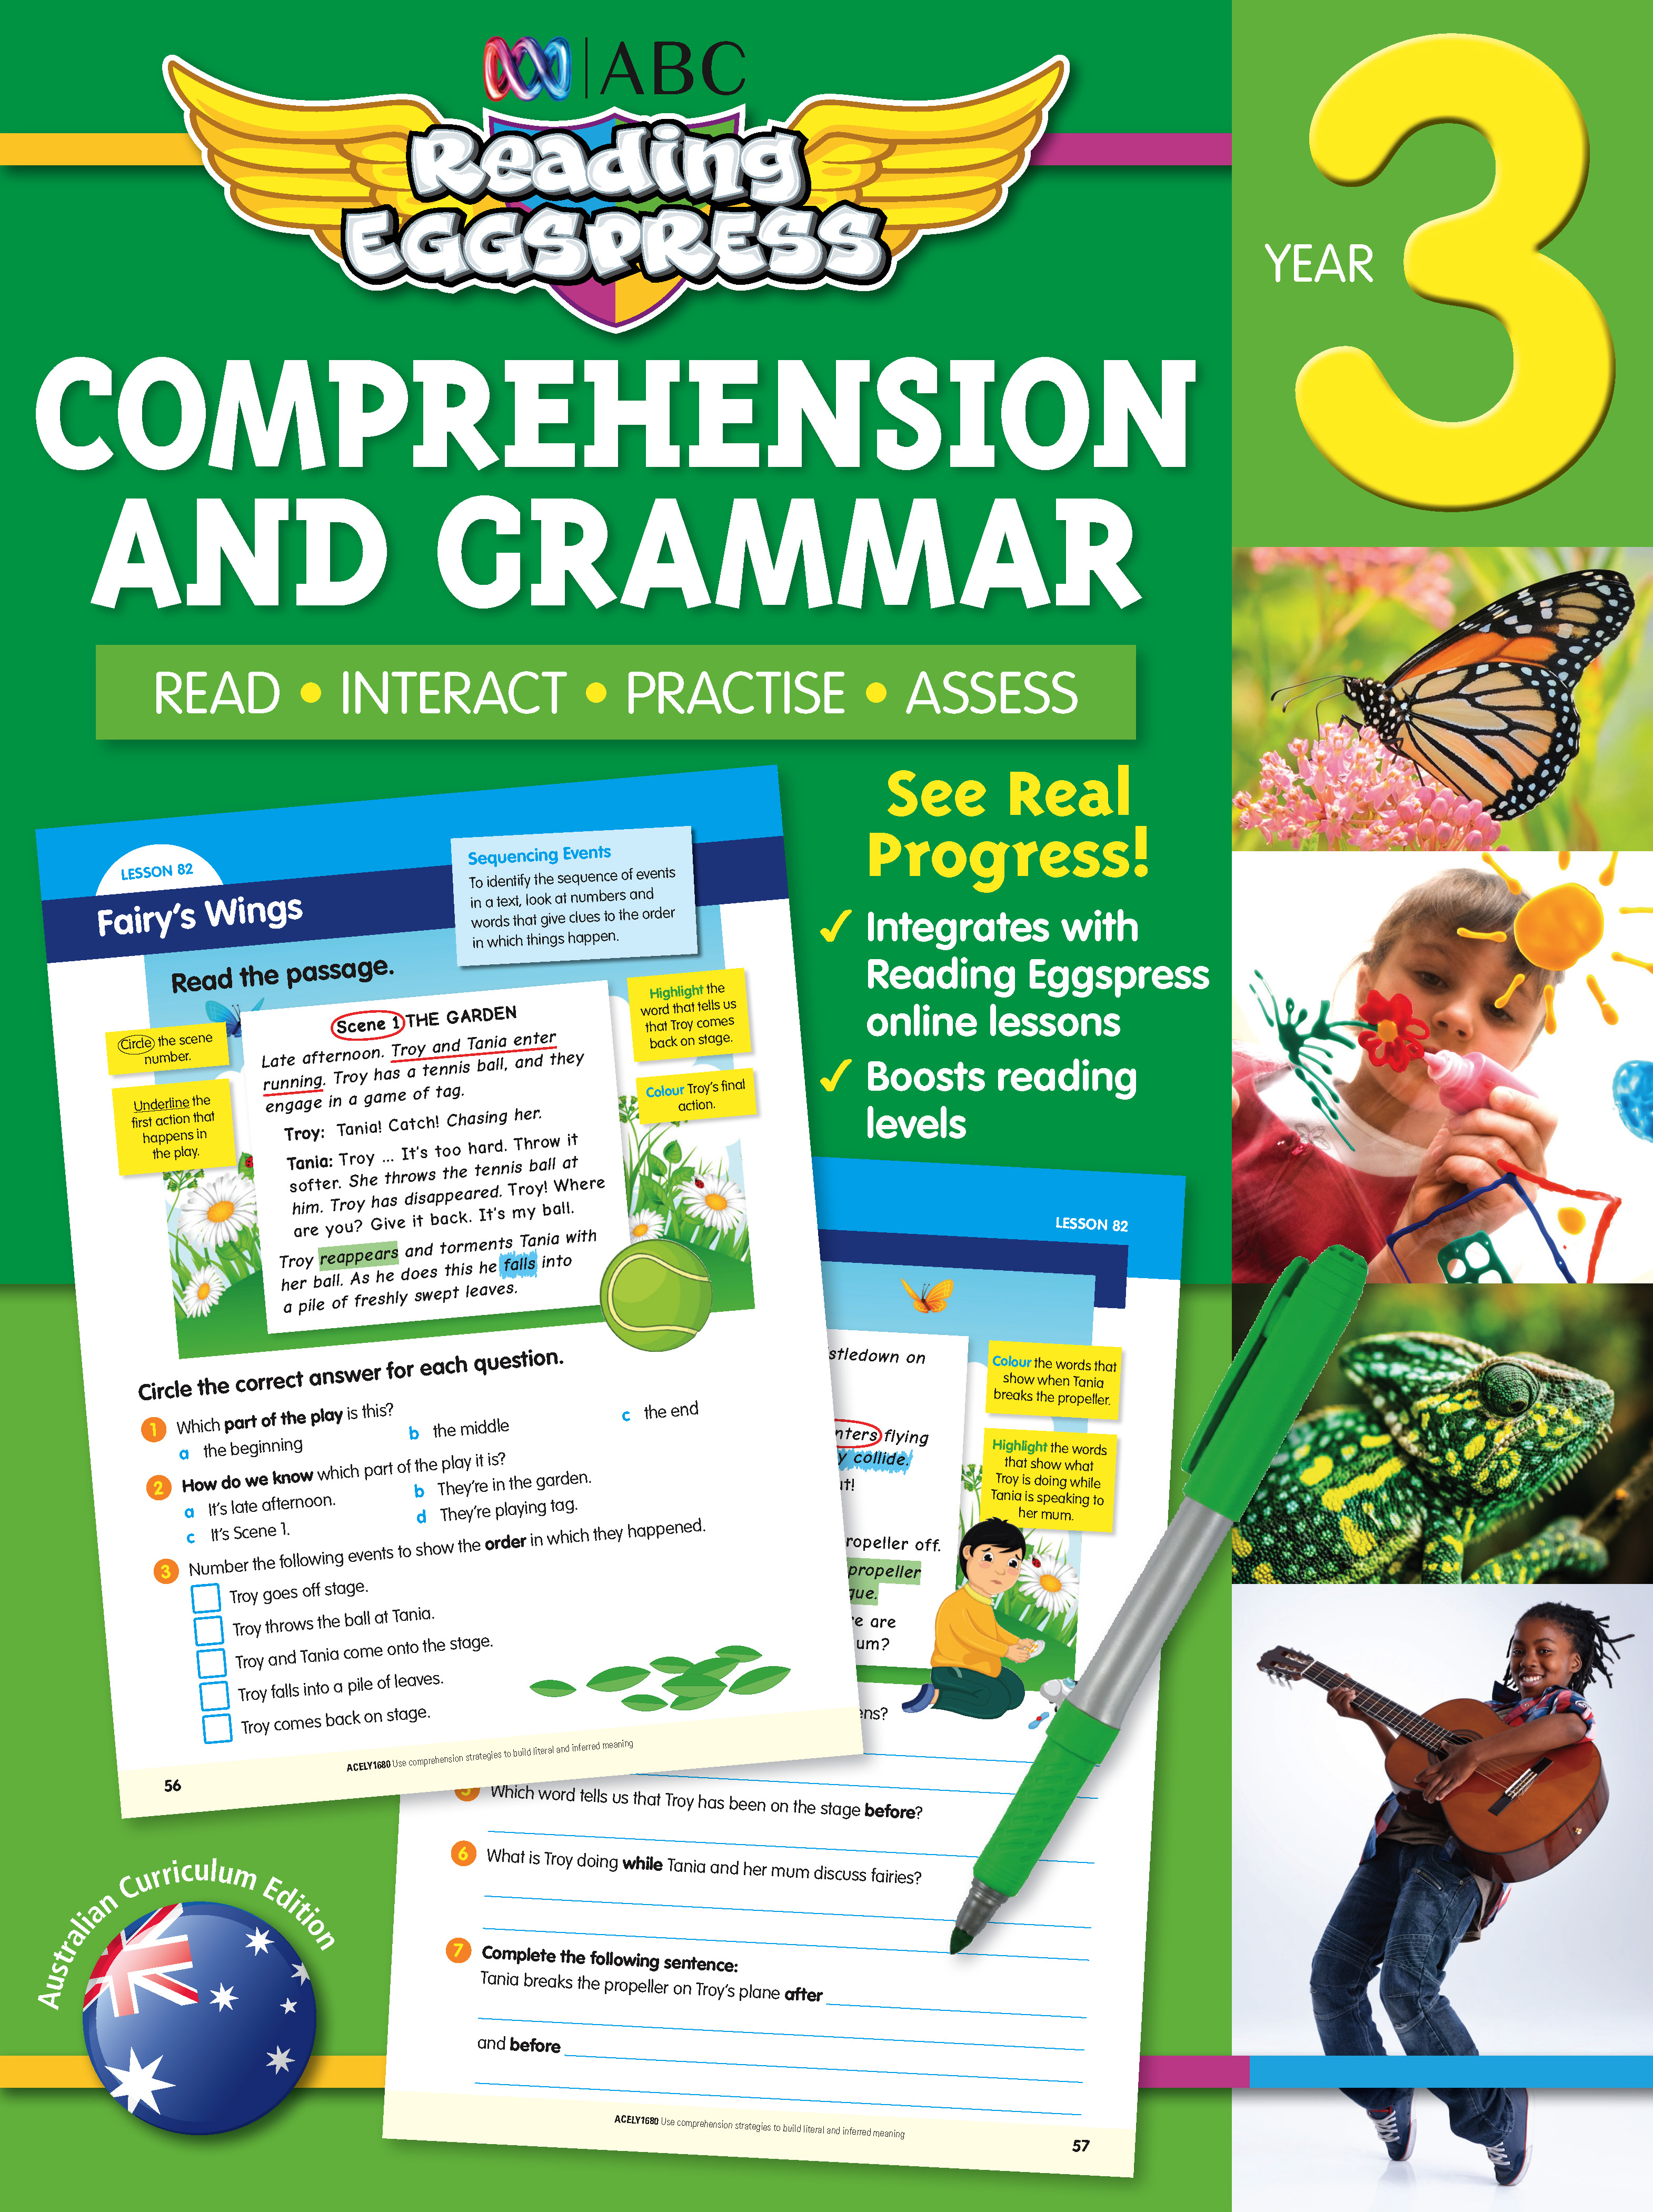 ABC Reading Eggspress Comprehension and Grammar Workbook Year 3